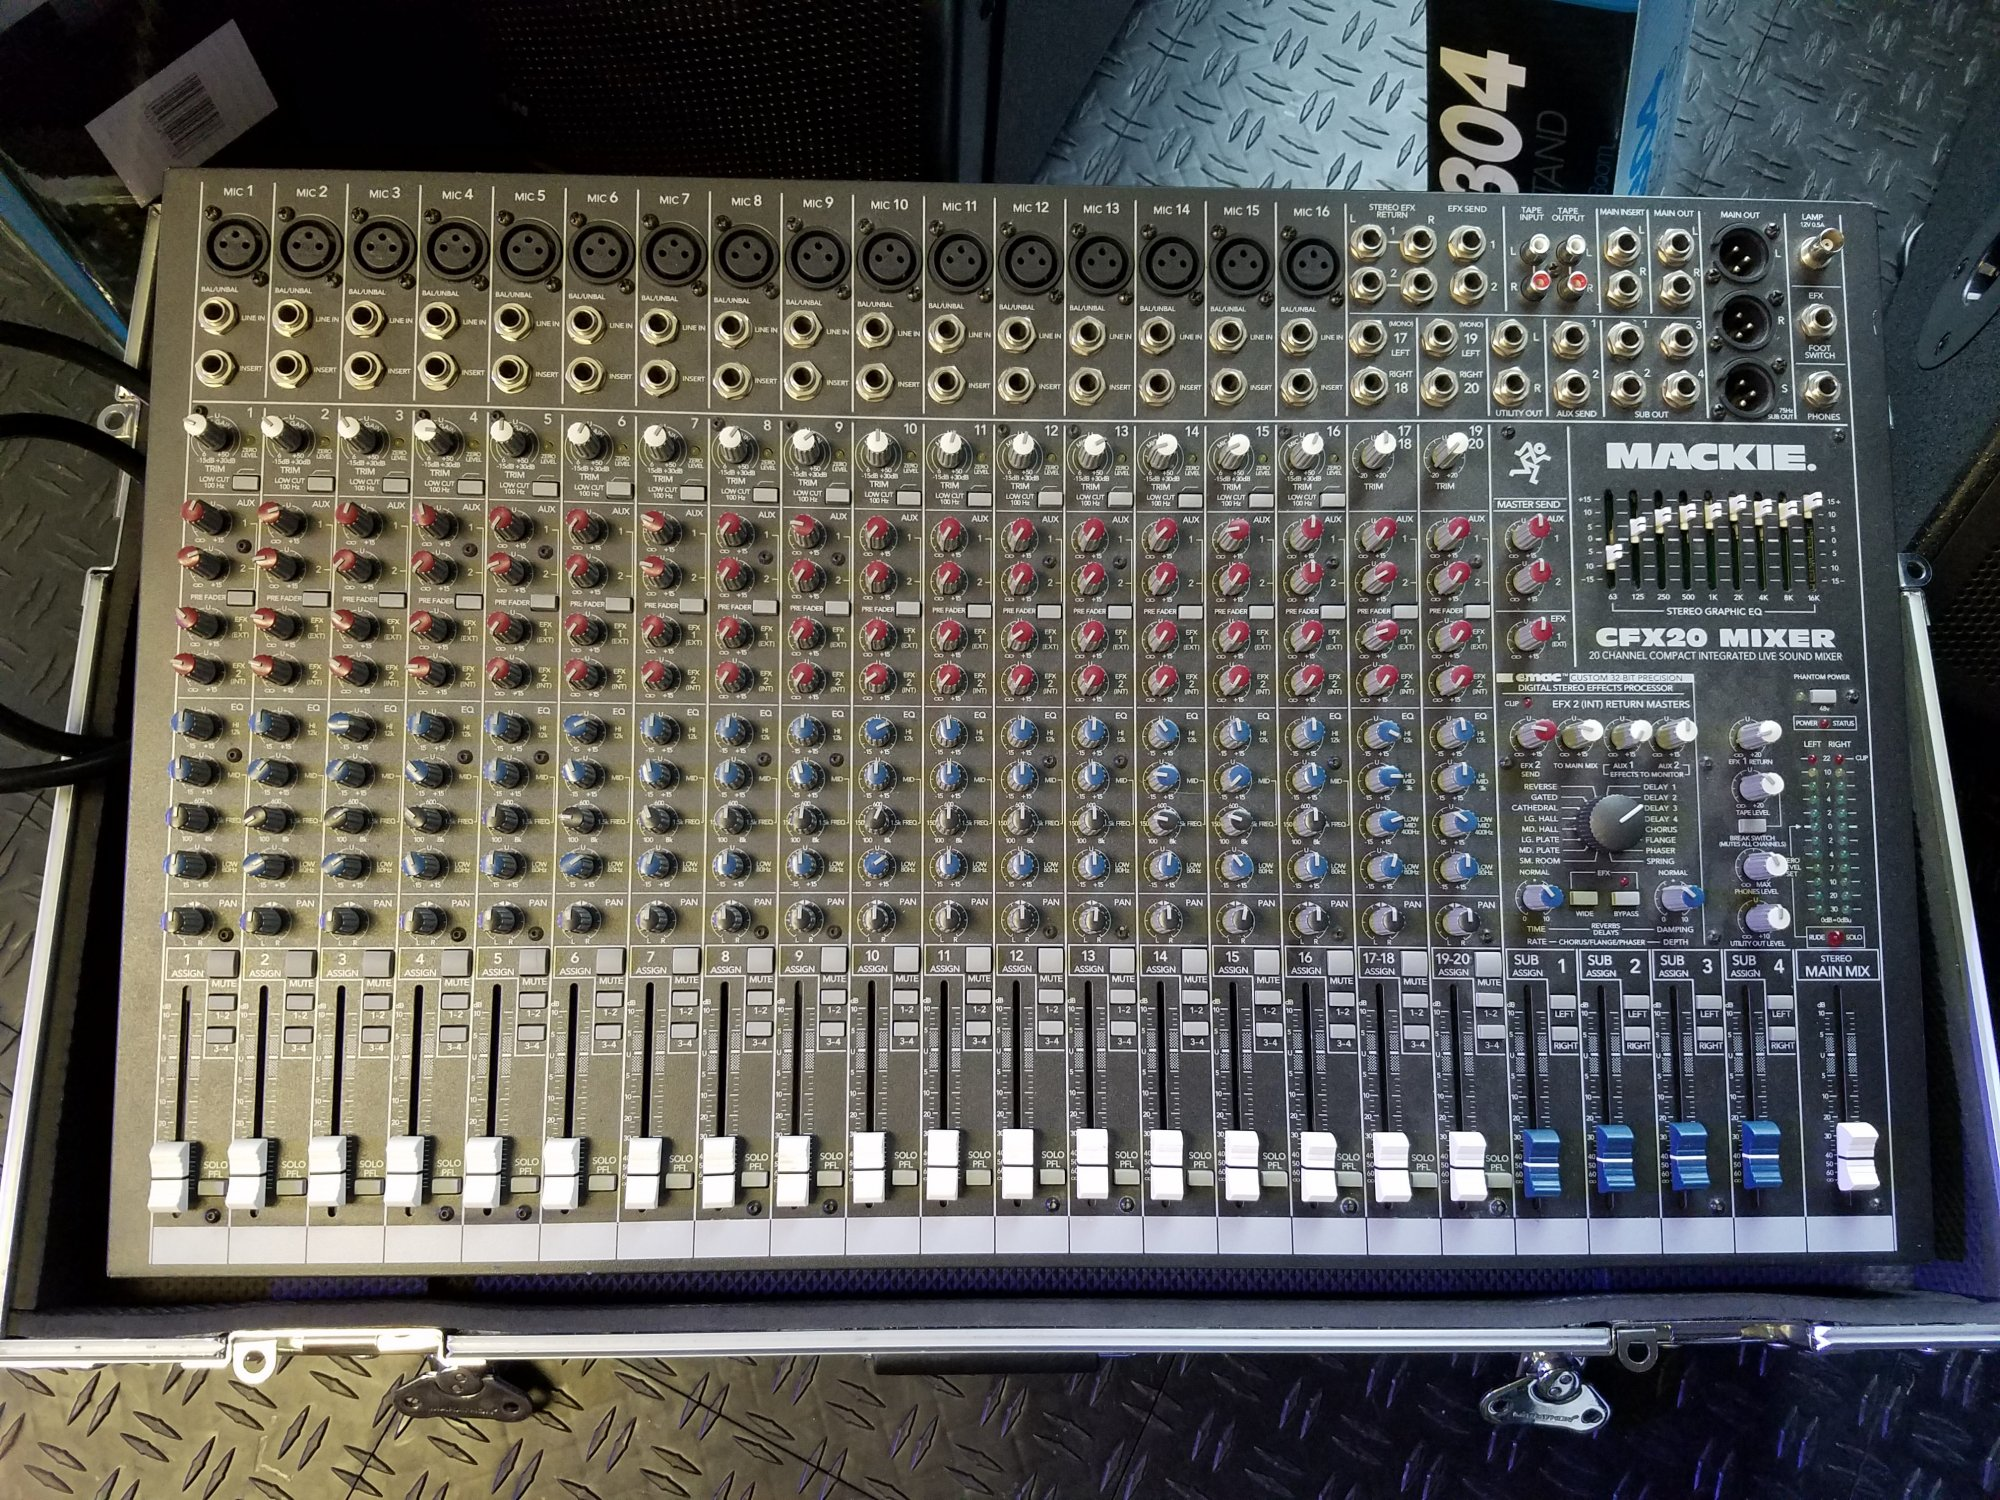 Used Mackie CFX20 Mixer with Roadcase